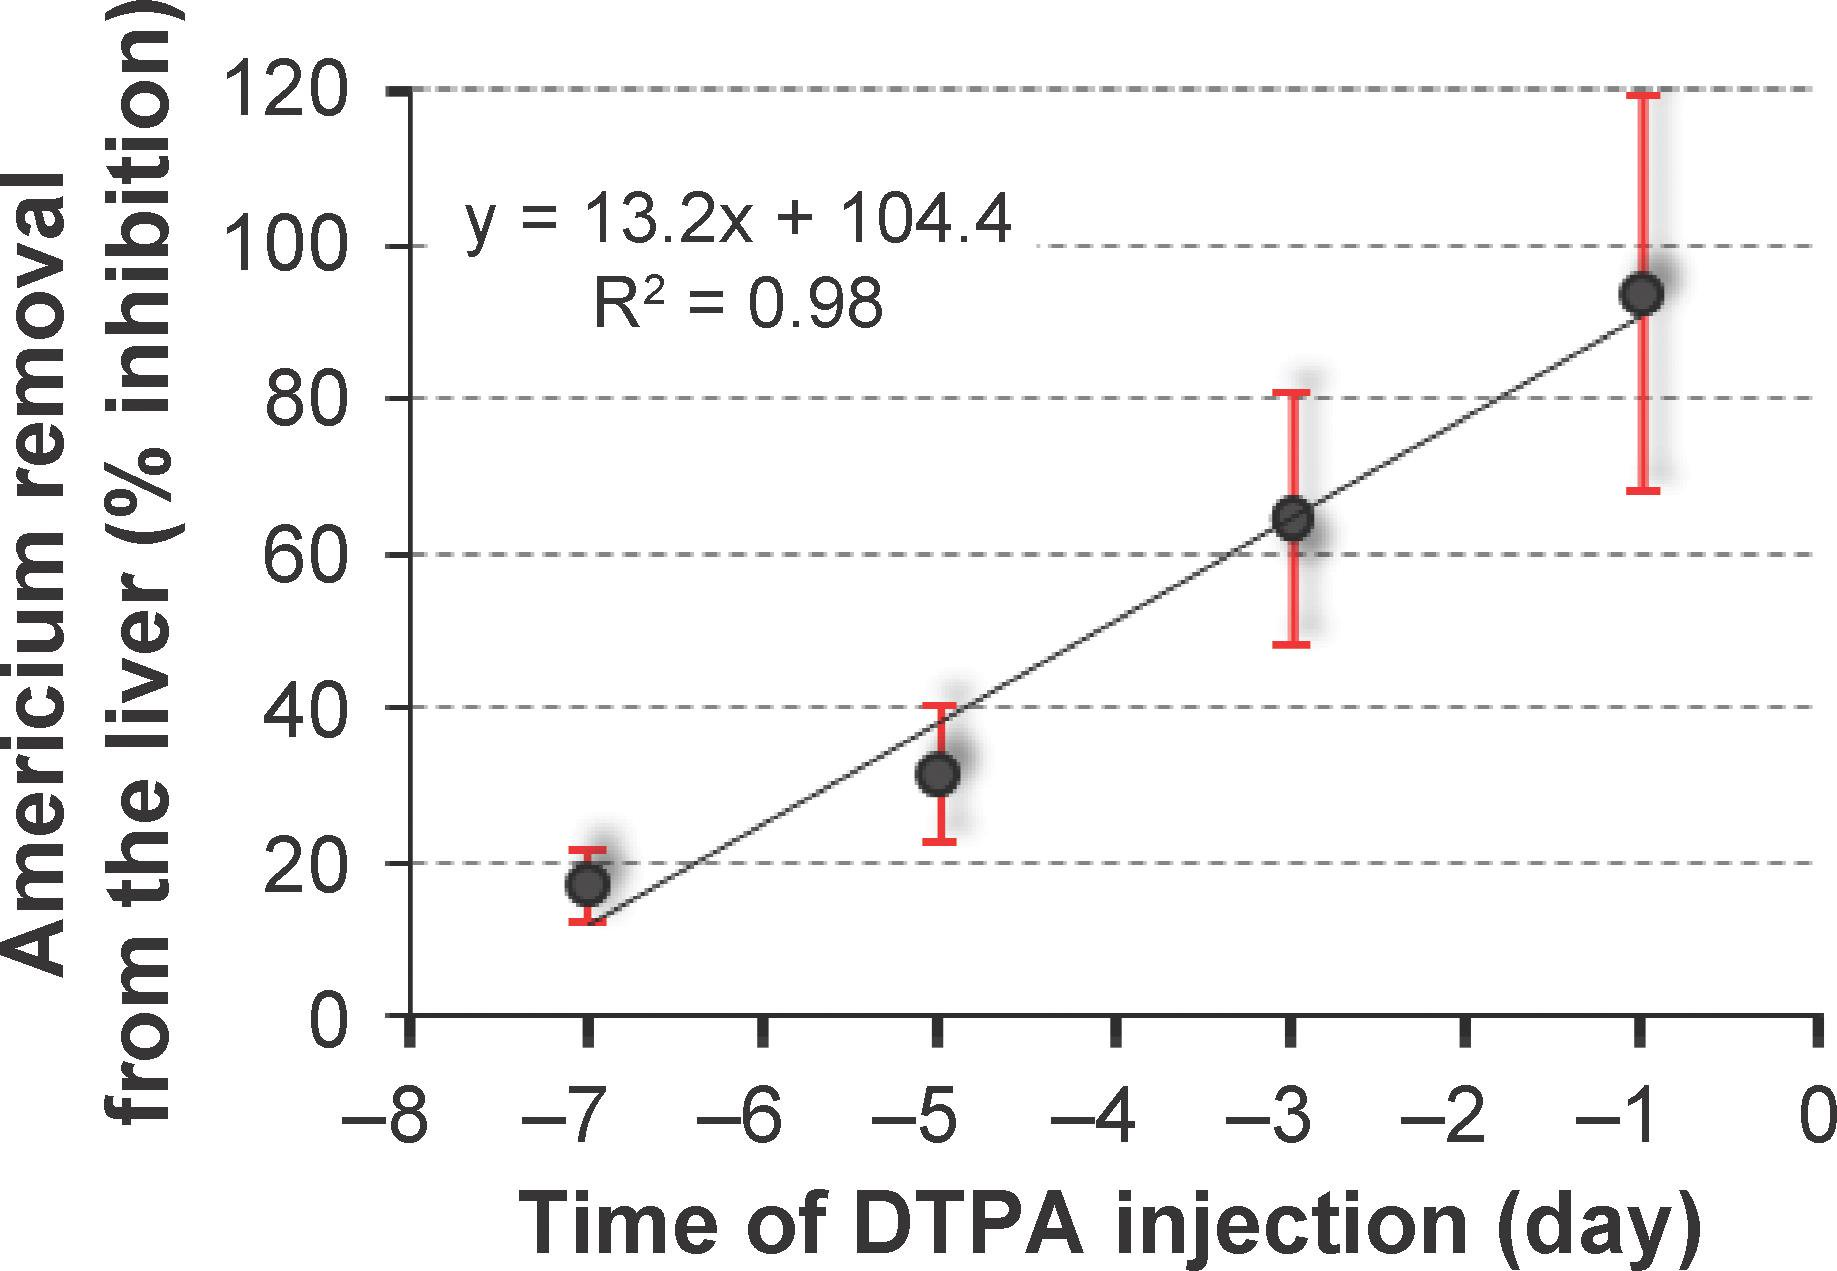 Decorporation of Pu/Am Actinides by Chelation Therapy: New